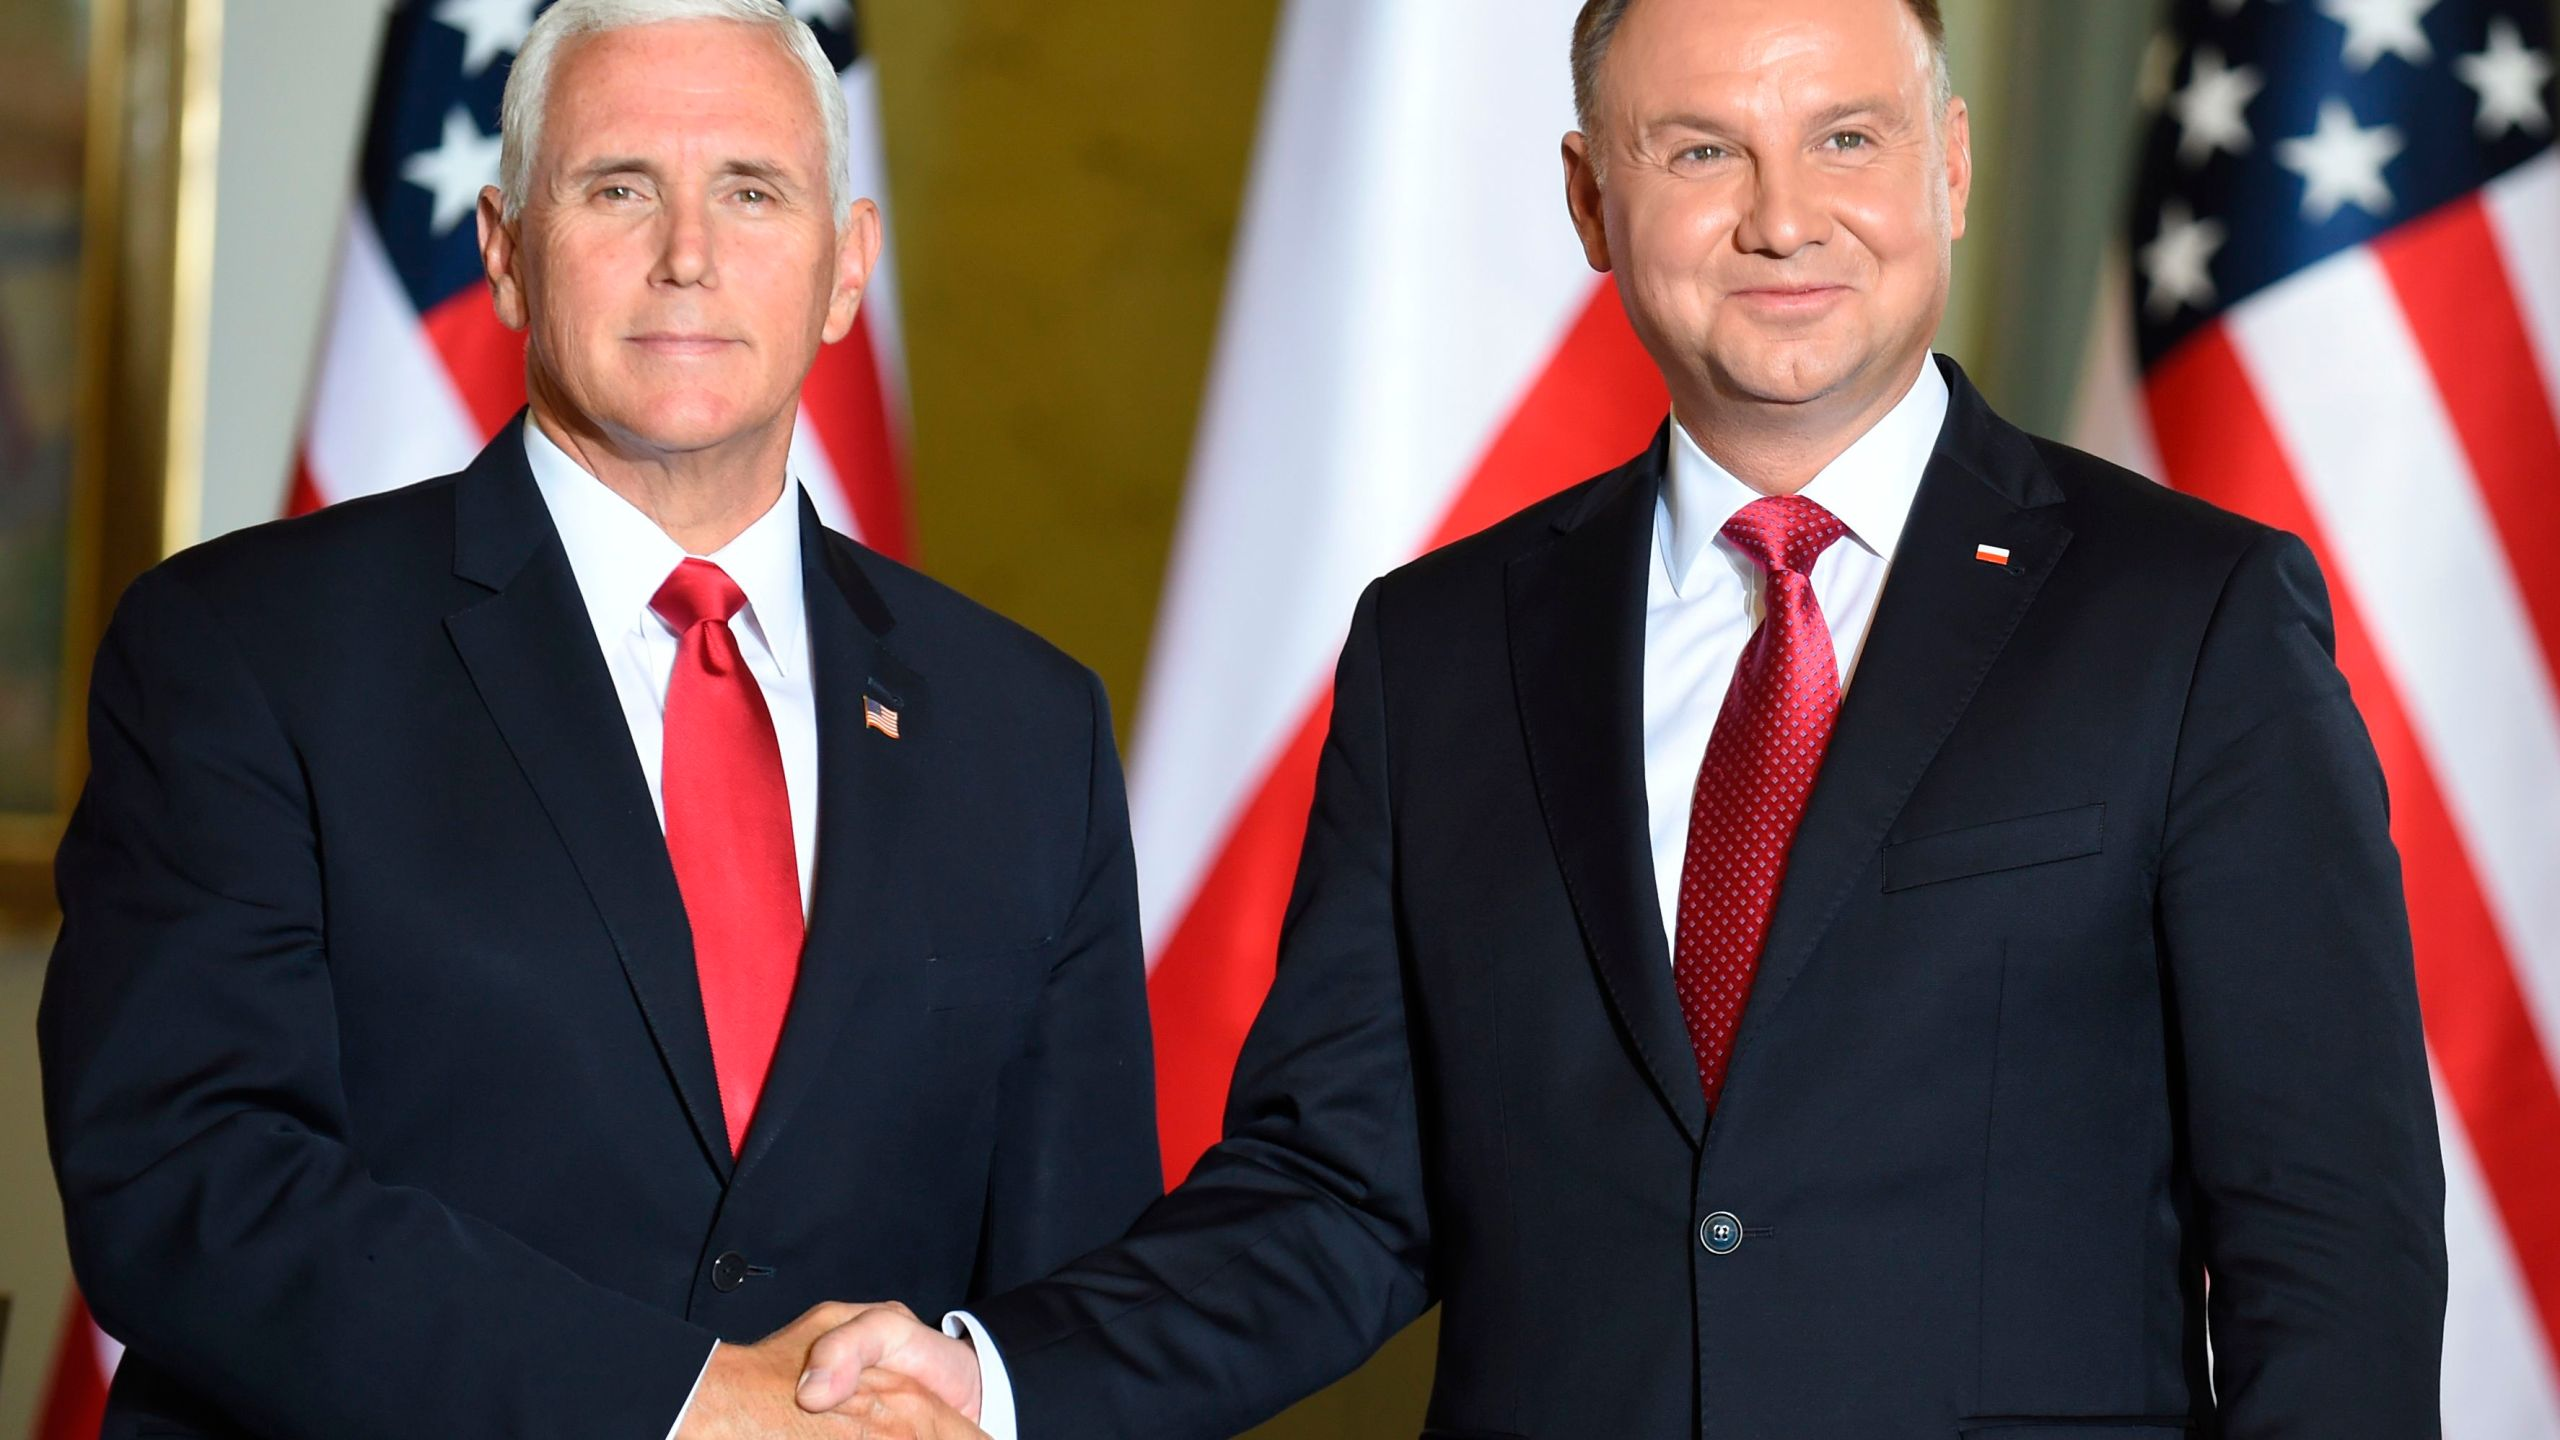 Polish President Andrzej Duda (right) shakes hand with U.S. Vice President Mike Pence during a meeting in Warsaw on Sept. 2, 2019. (Credit: JANEK SKARZYNSKI/AFP/Getty Images)